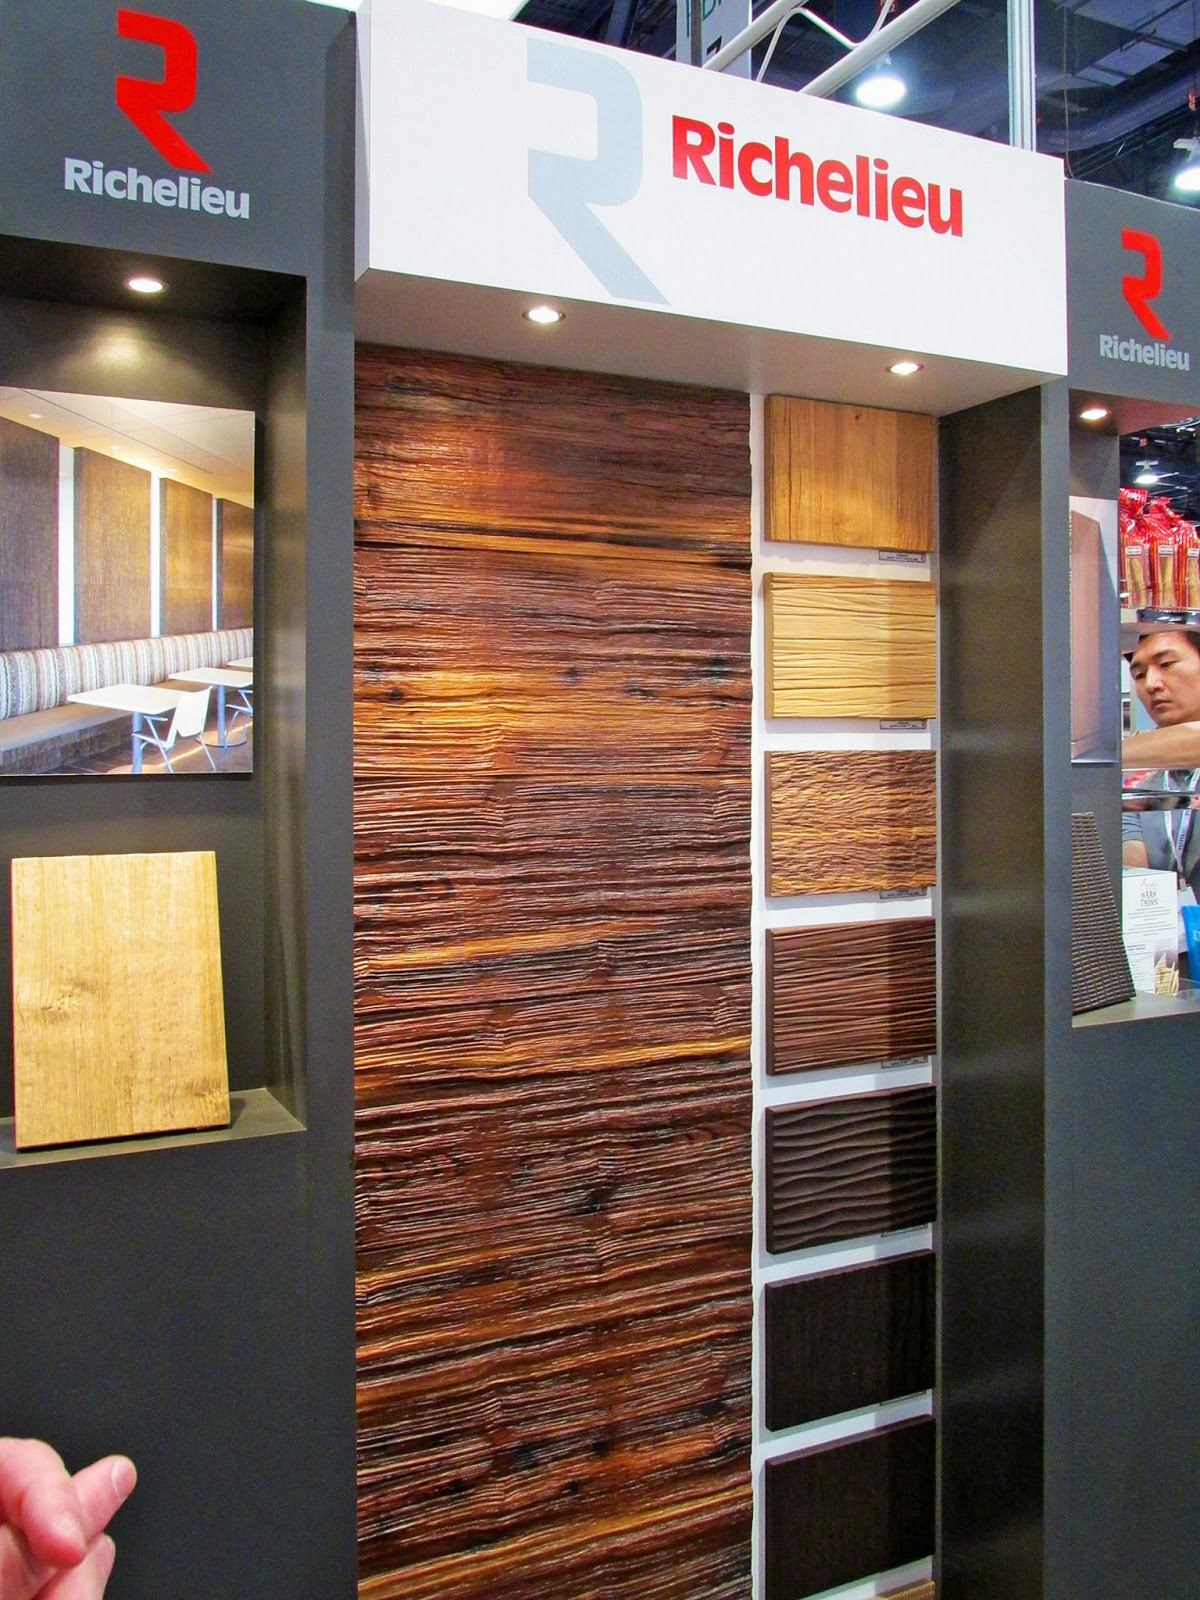 More textures, in a range from very realistic wood grains to purely artistic patterns.